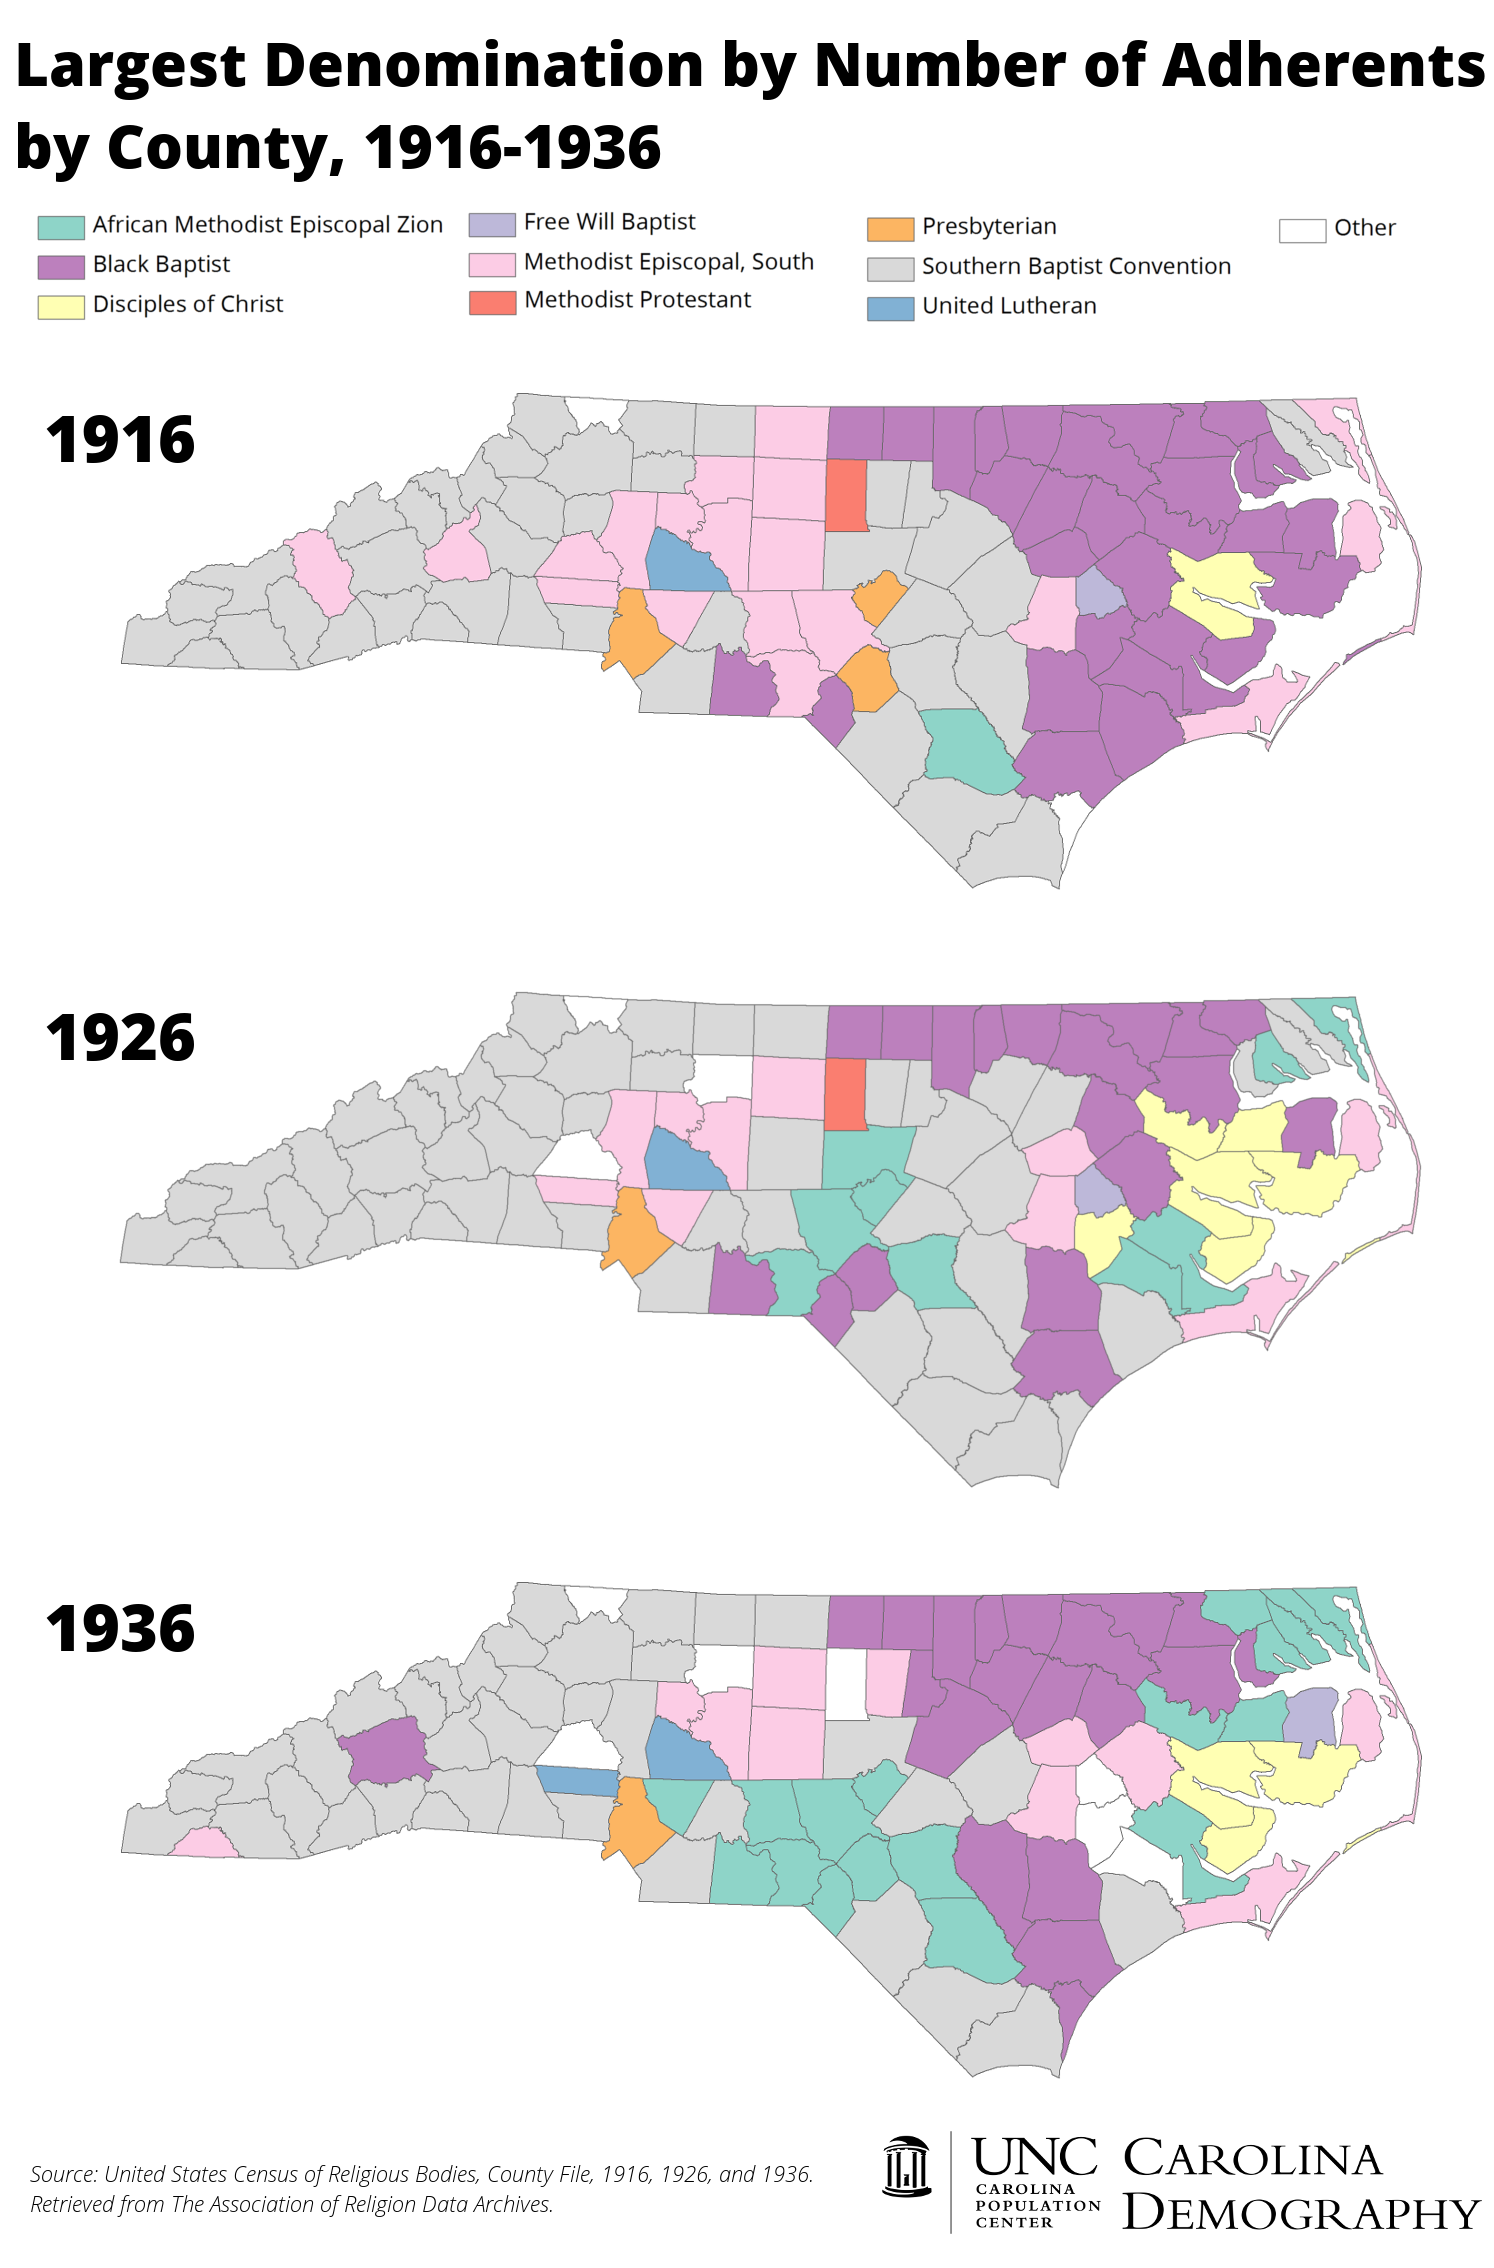 NC_Religious_Adherents_CD_1916to1936